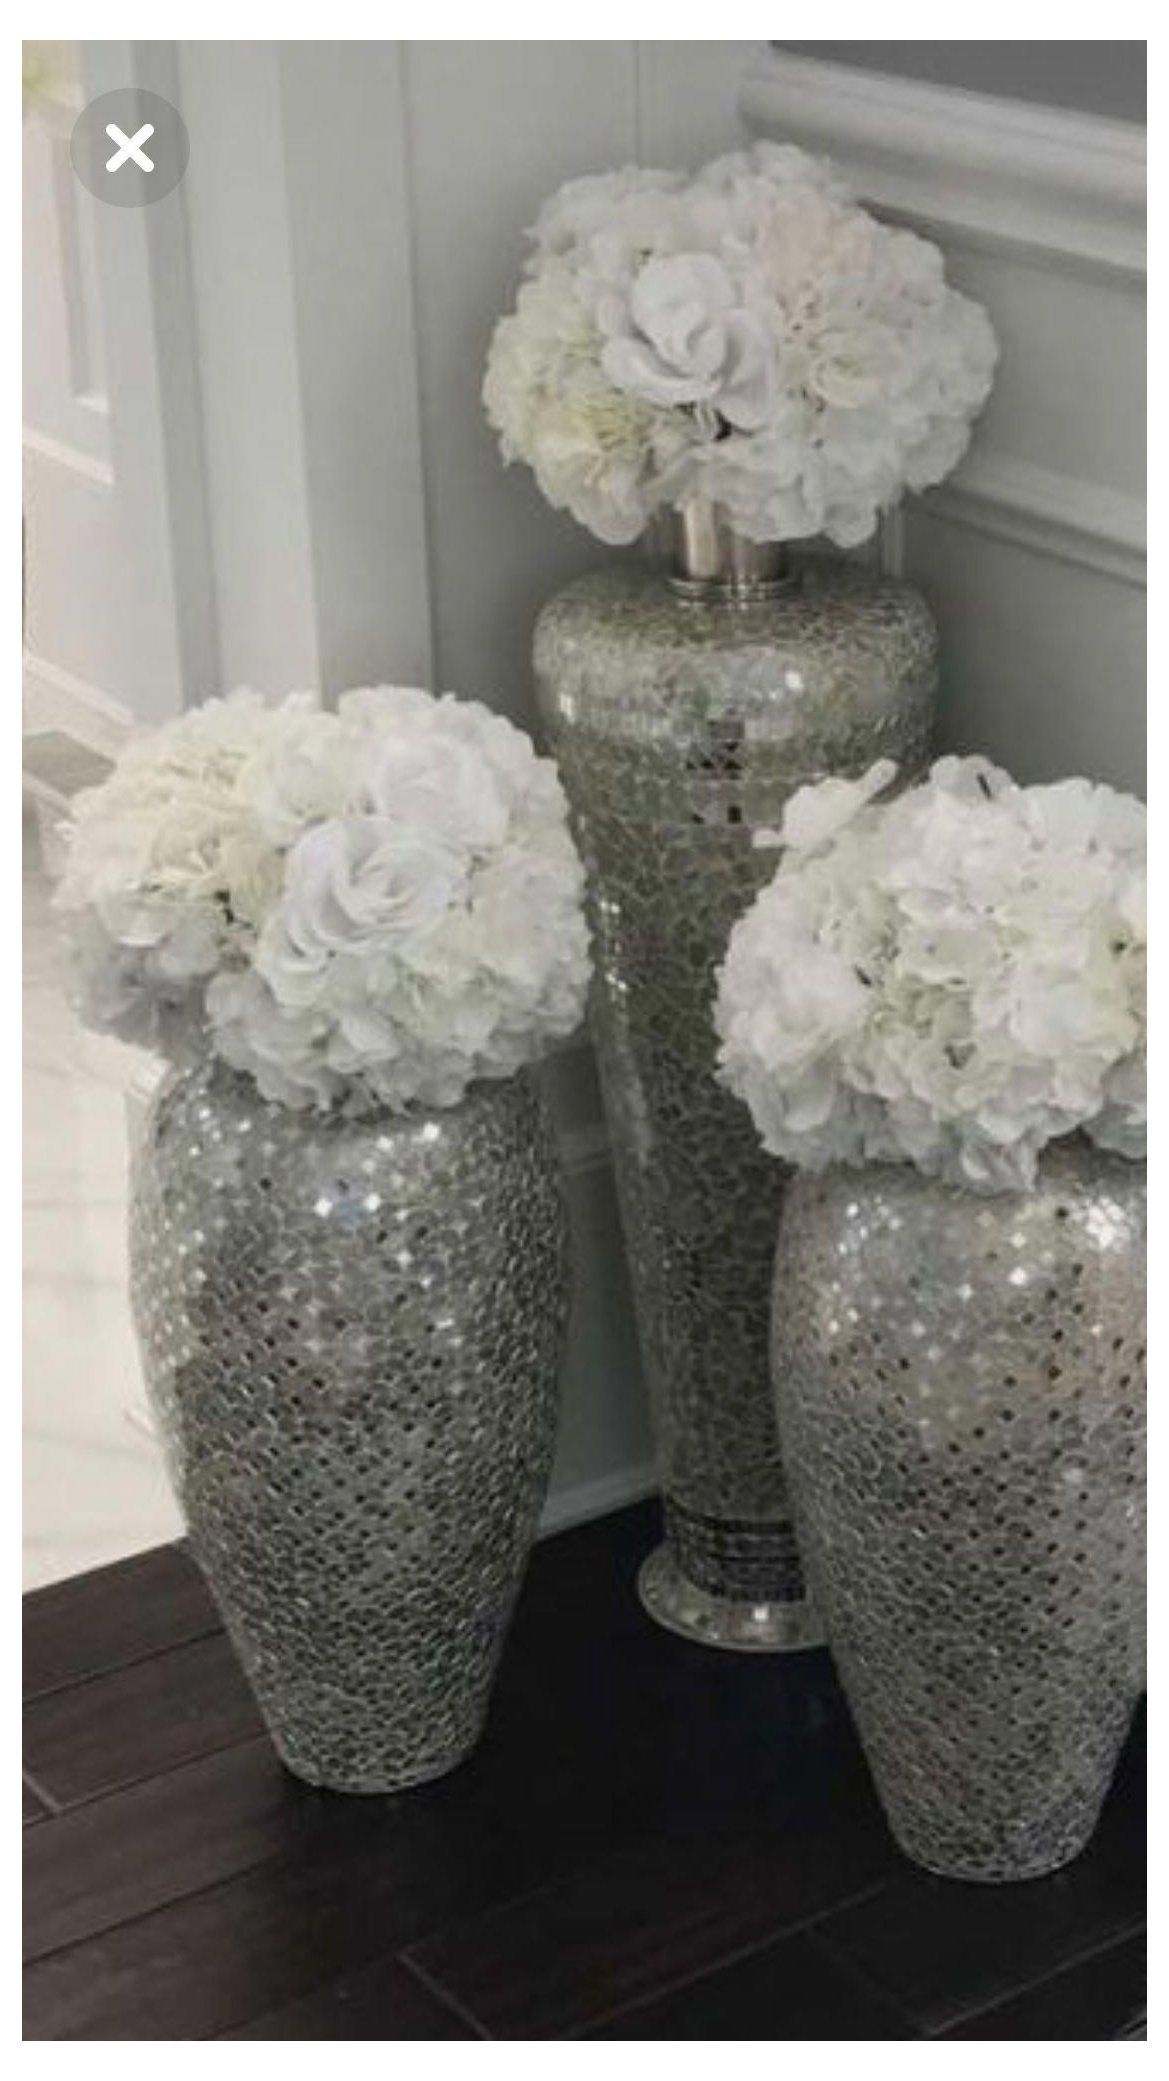 Advice And Selection Of Clever Storage For The Kitchen Vases For Living Room Decorations Closets In 2020 Silver Living Room Decor Silver Living Room Glitter Vases #silver #living #room #accessories